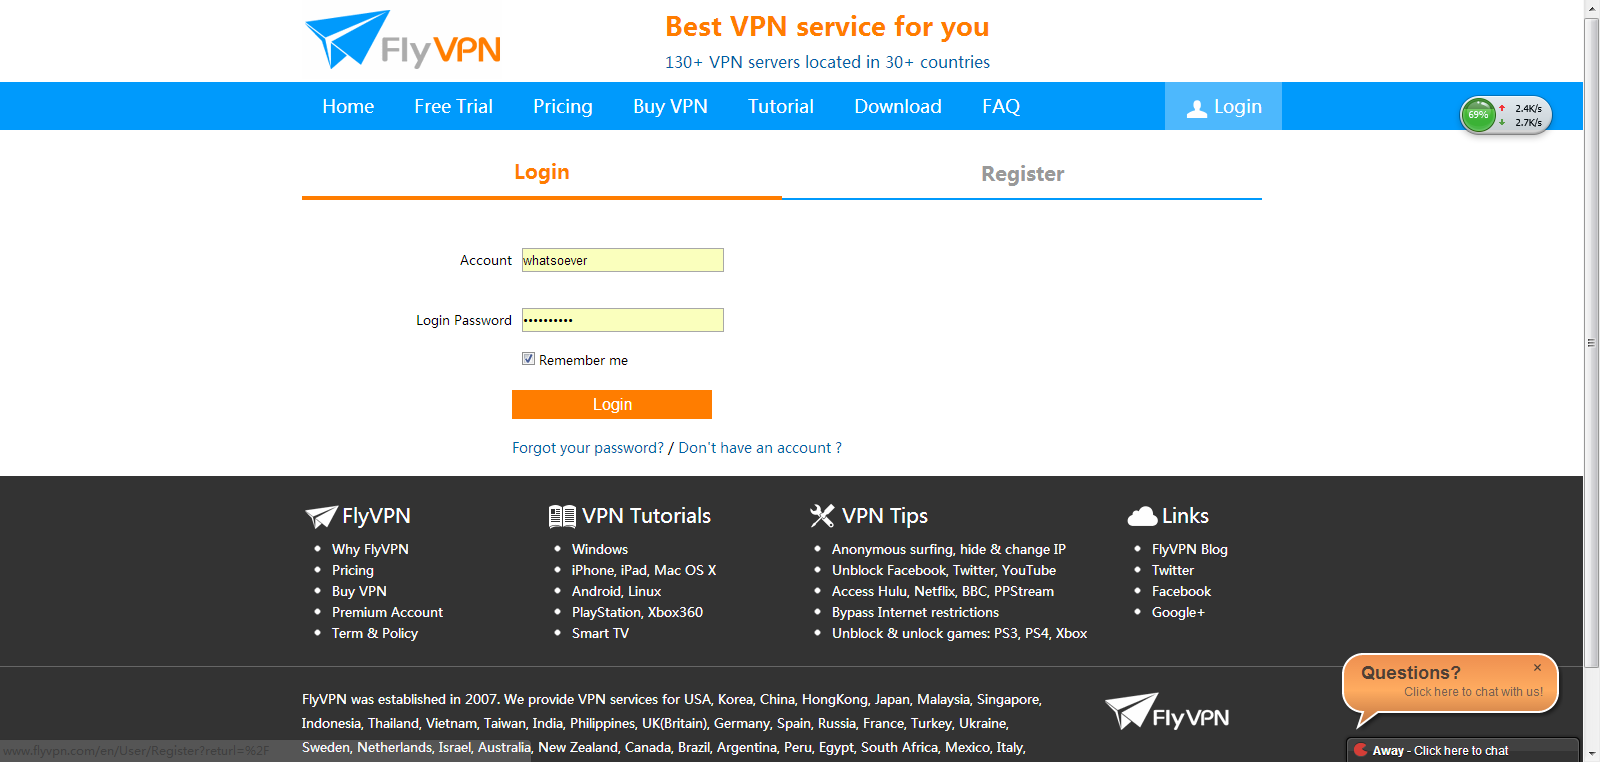 Log in with your own account to get FlyVPN servers's IP addresses